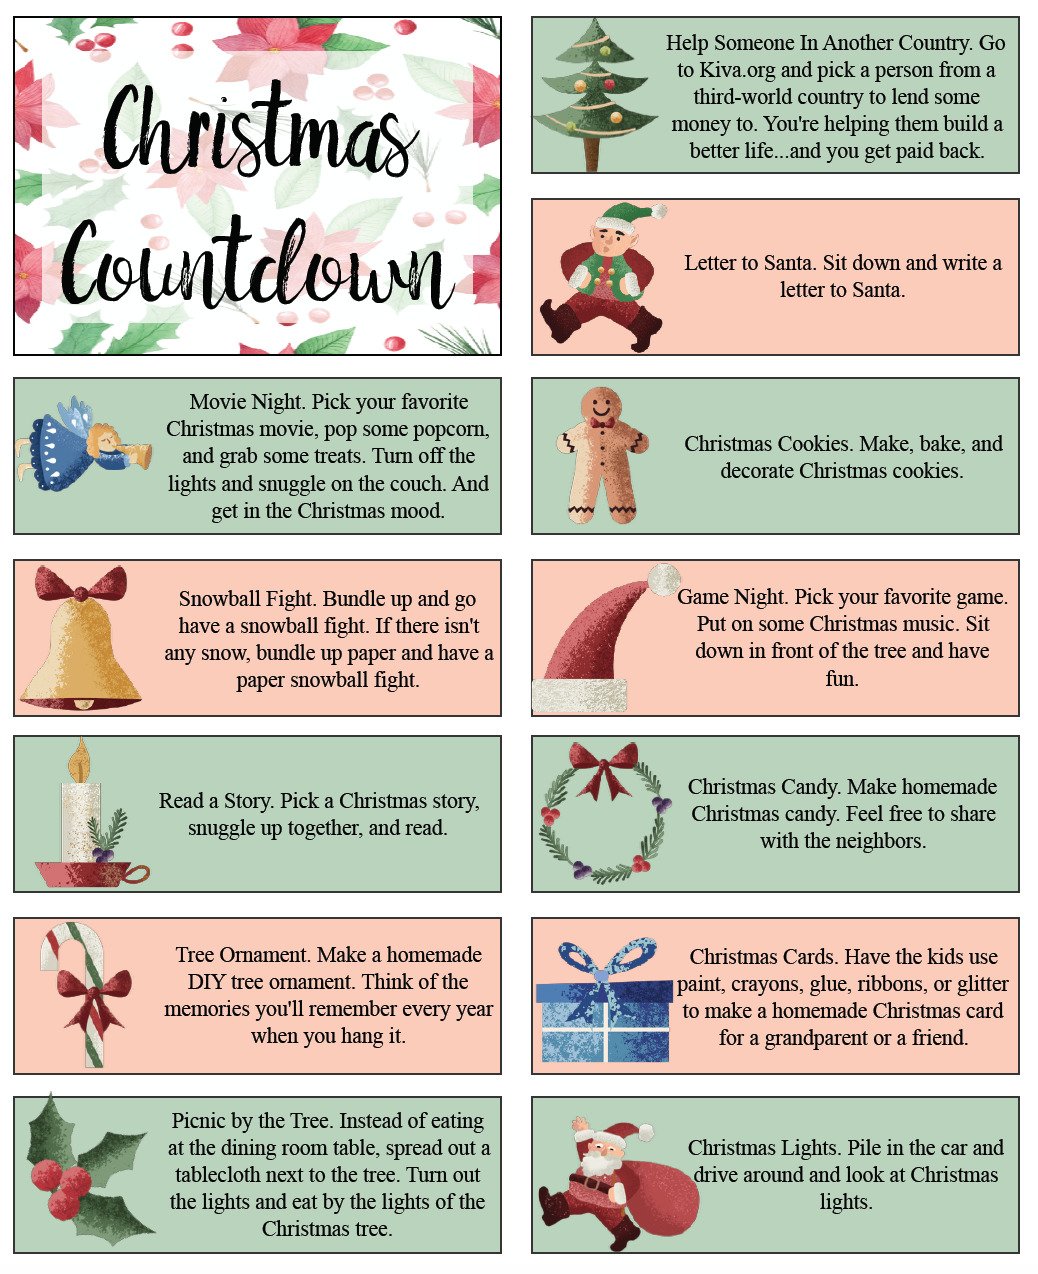 Page 1 of Christmas countdown activities.